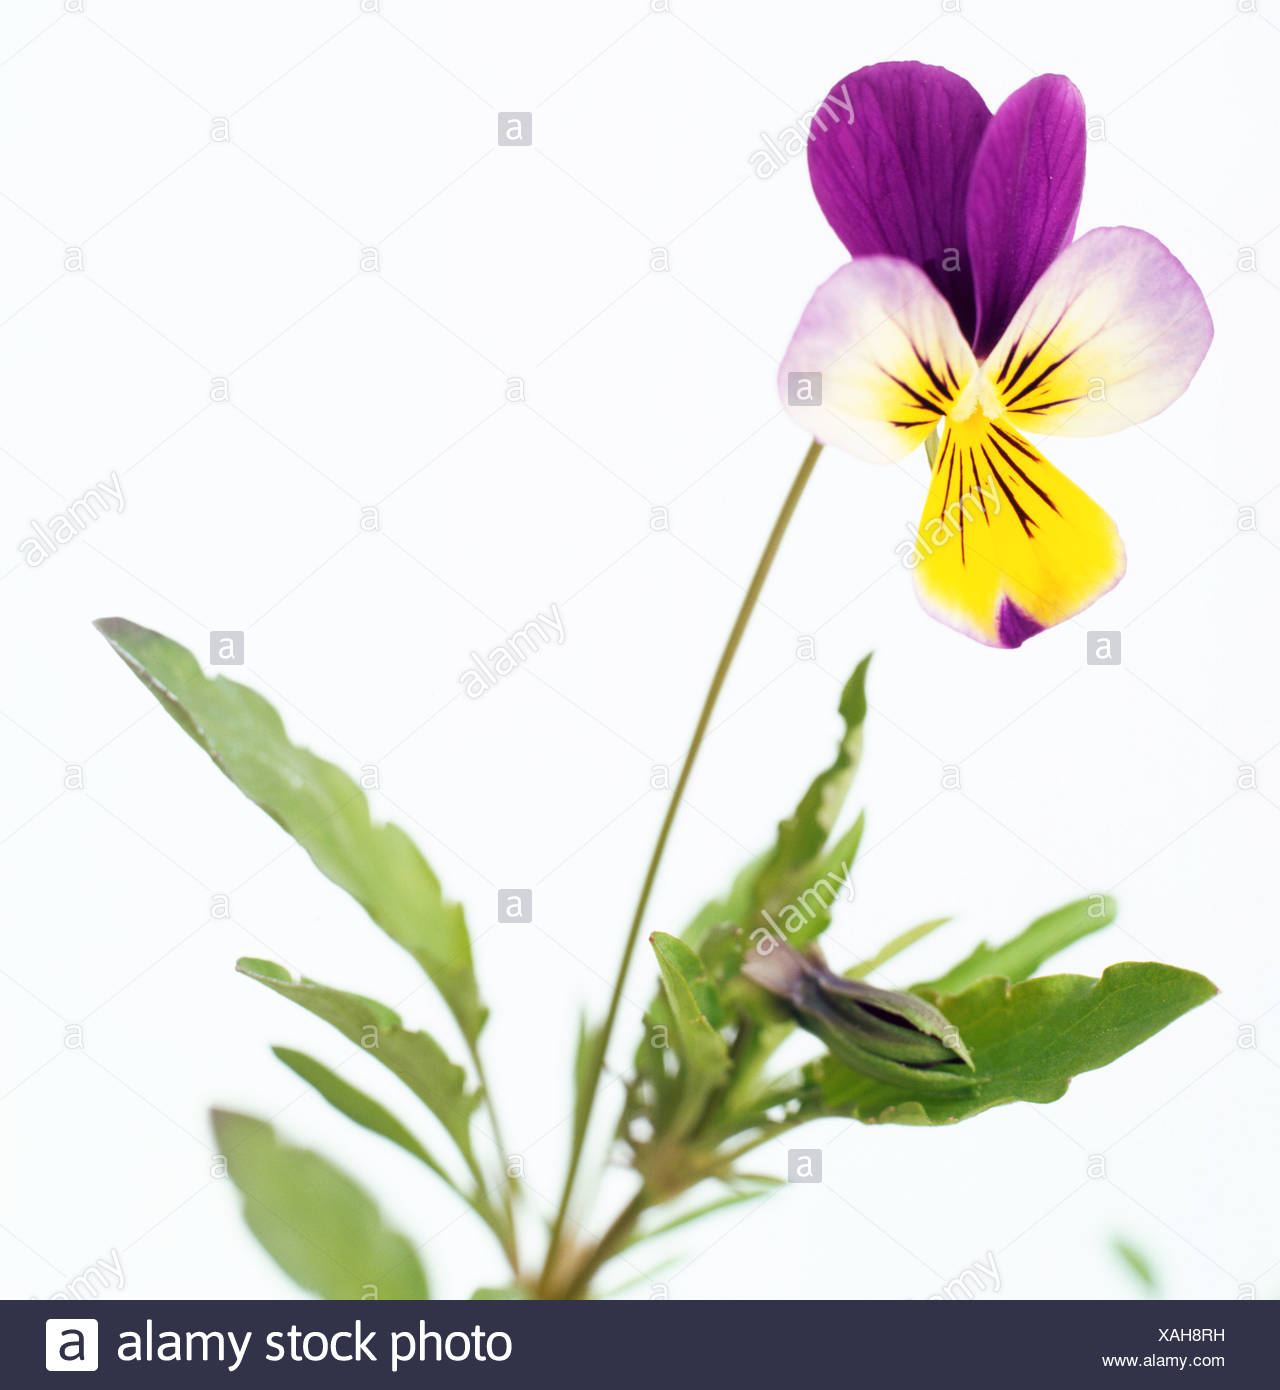 Viola tricolor, heartsease, wild pansy, small, tri coloured, pansy like flower with blue, yellow, white, - Stock Image